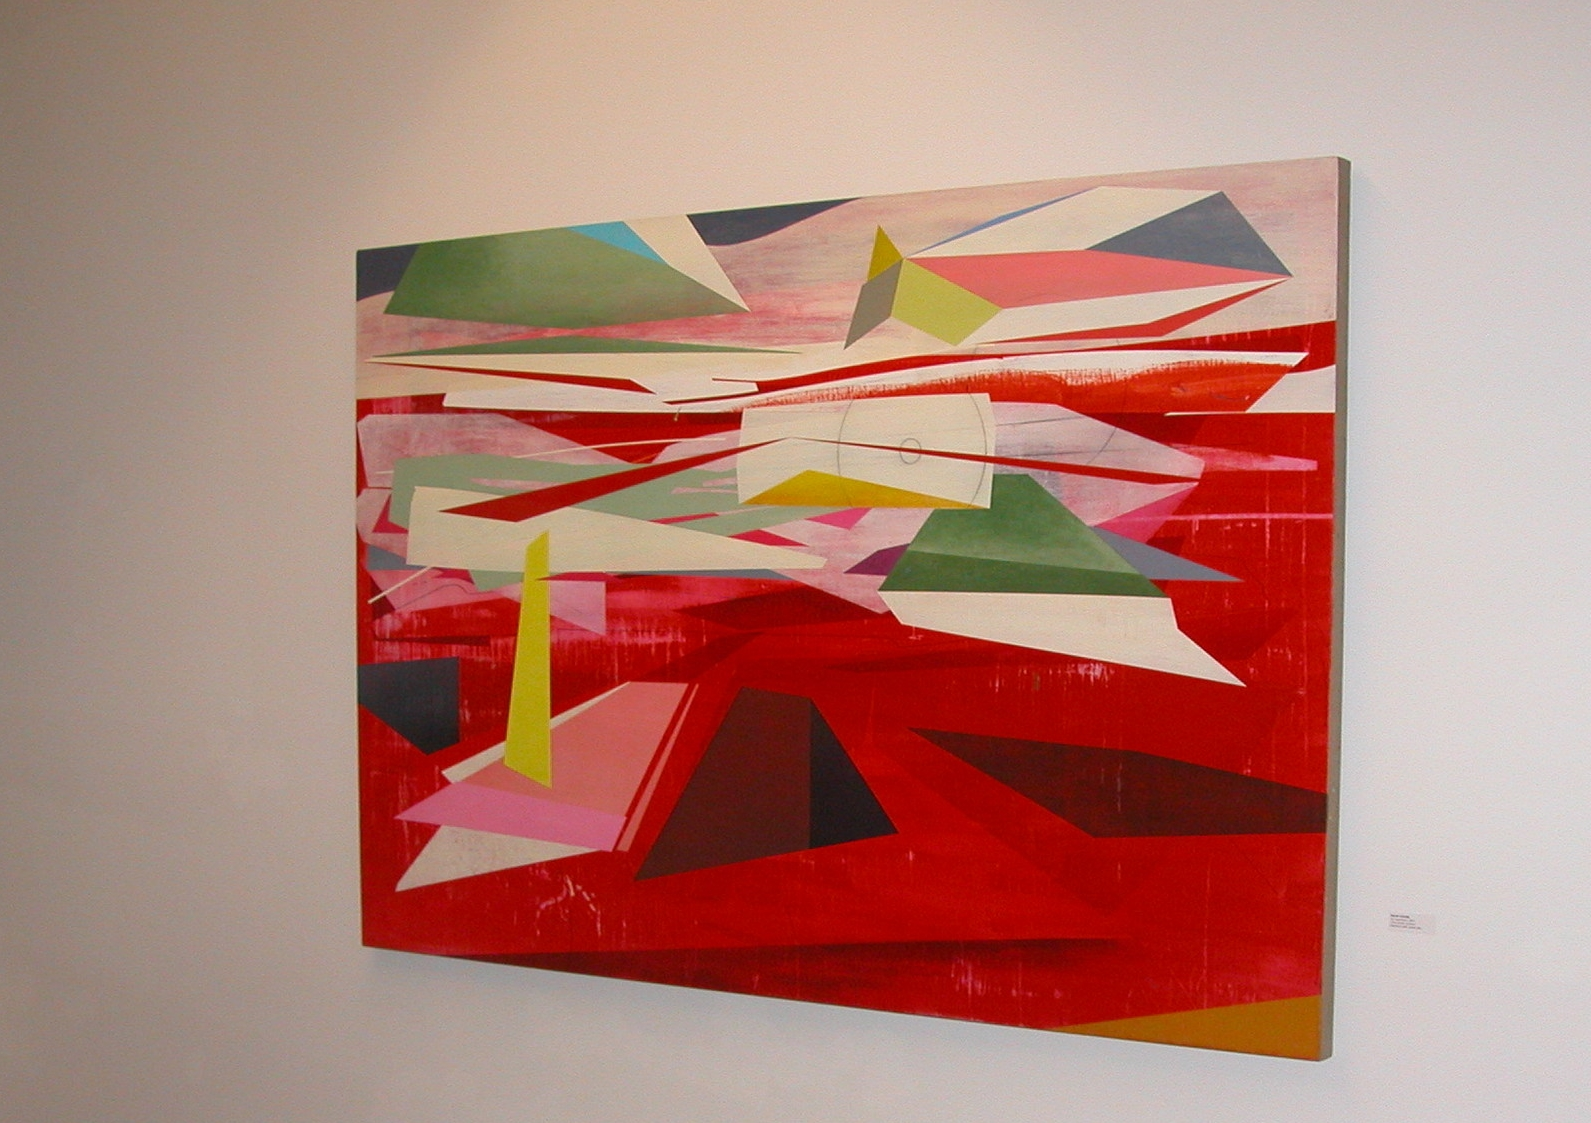 David Collins On approach, 2010 oil and acrylic on linen 46x70 inches